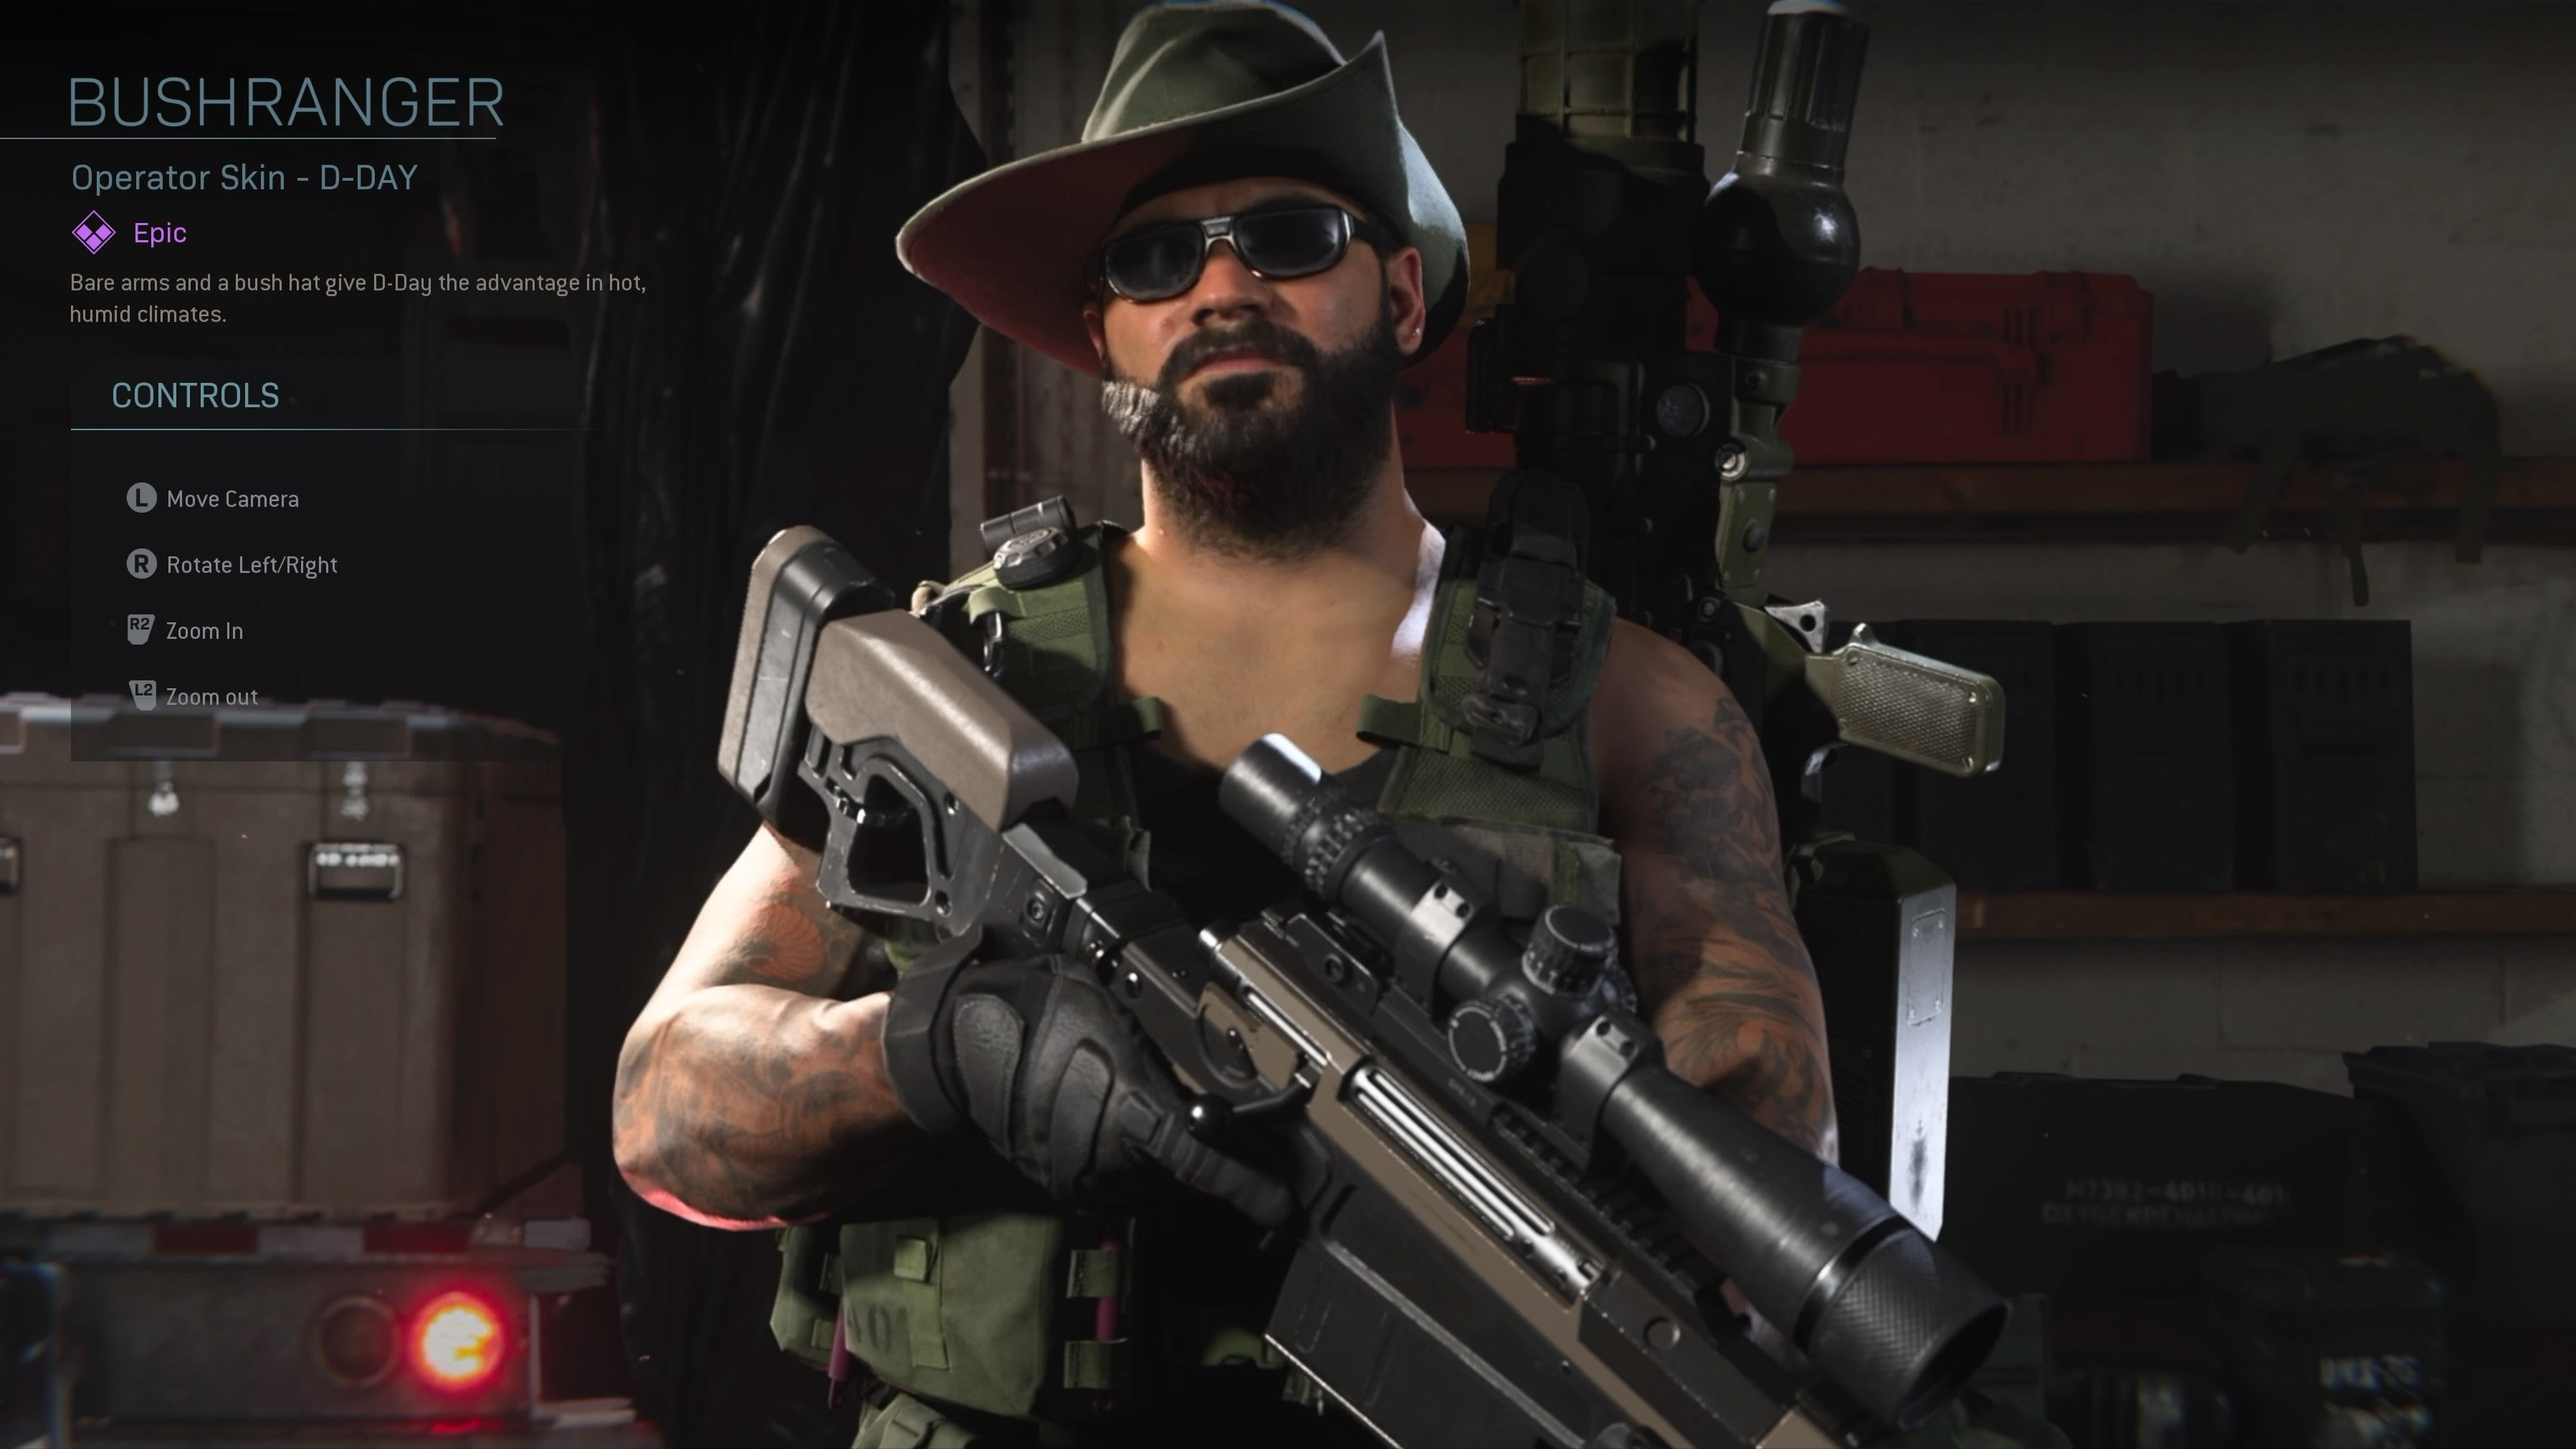 Modern Warfare's Australia-Themed DLC Will Now Benefit Bushfire Relief